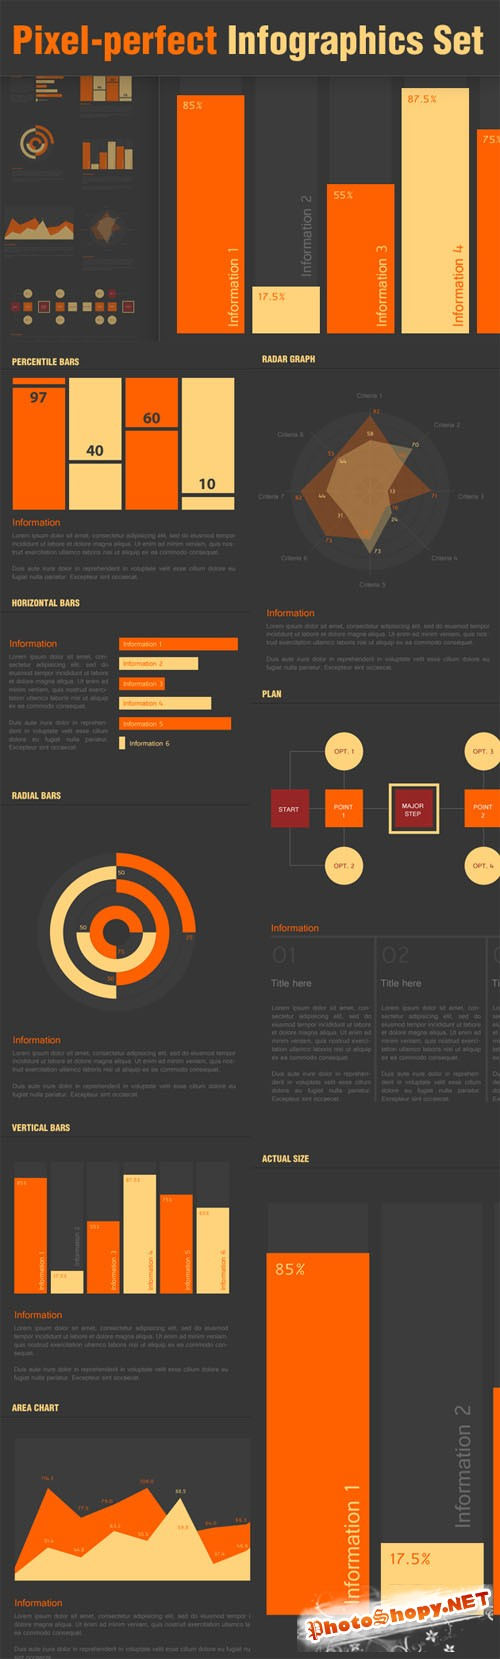 Designtnt - Pixel Perfect Infographic Elements